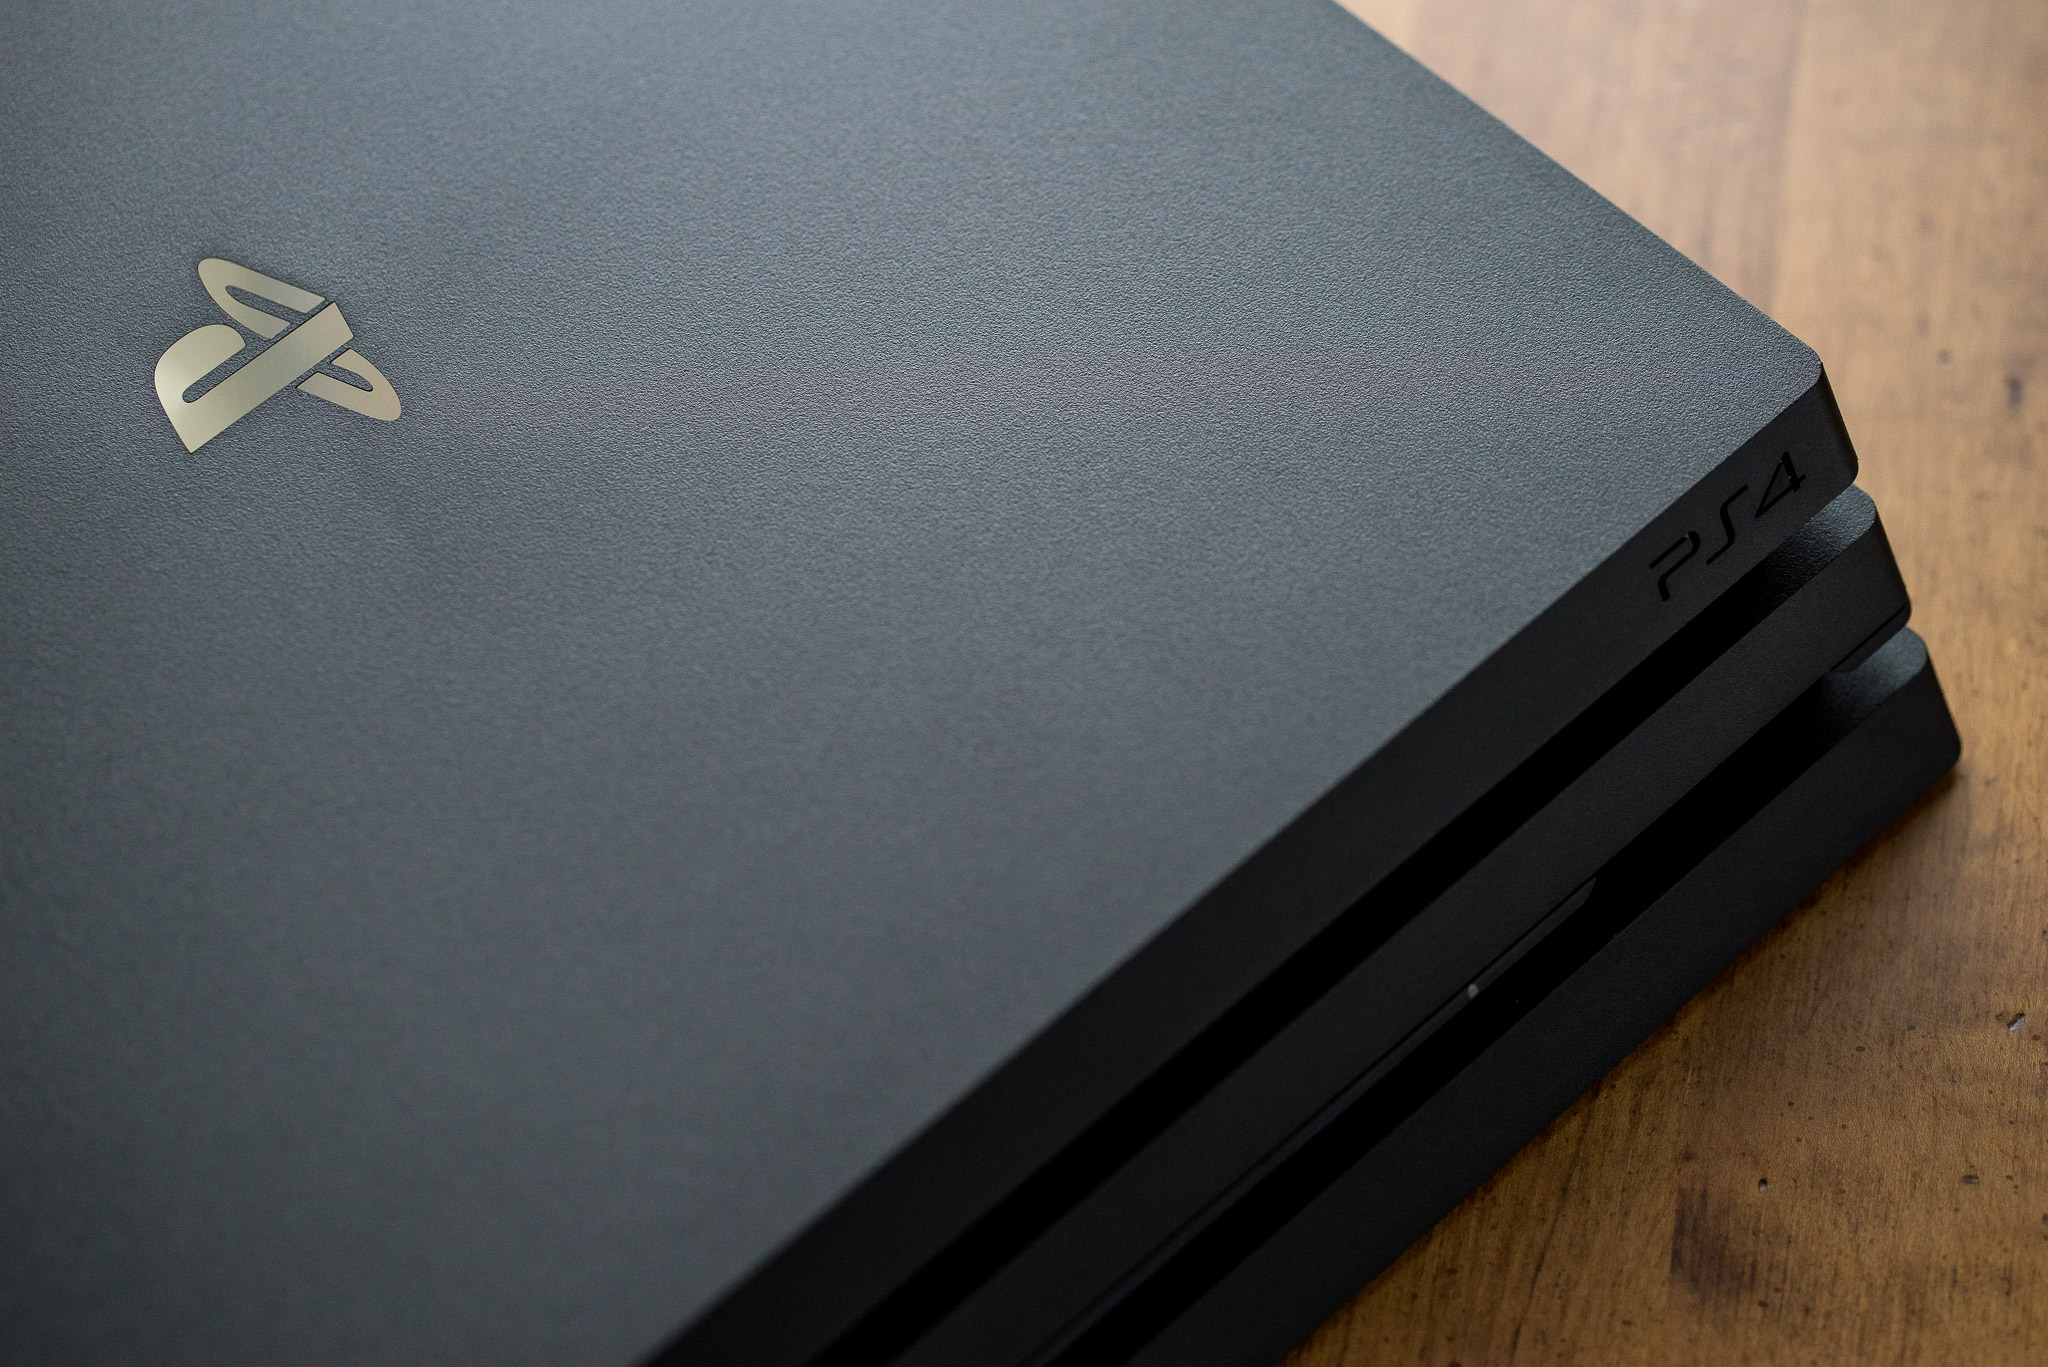 PSN name changes are 'coming soon'